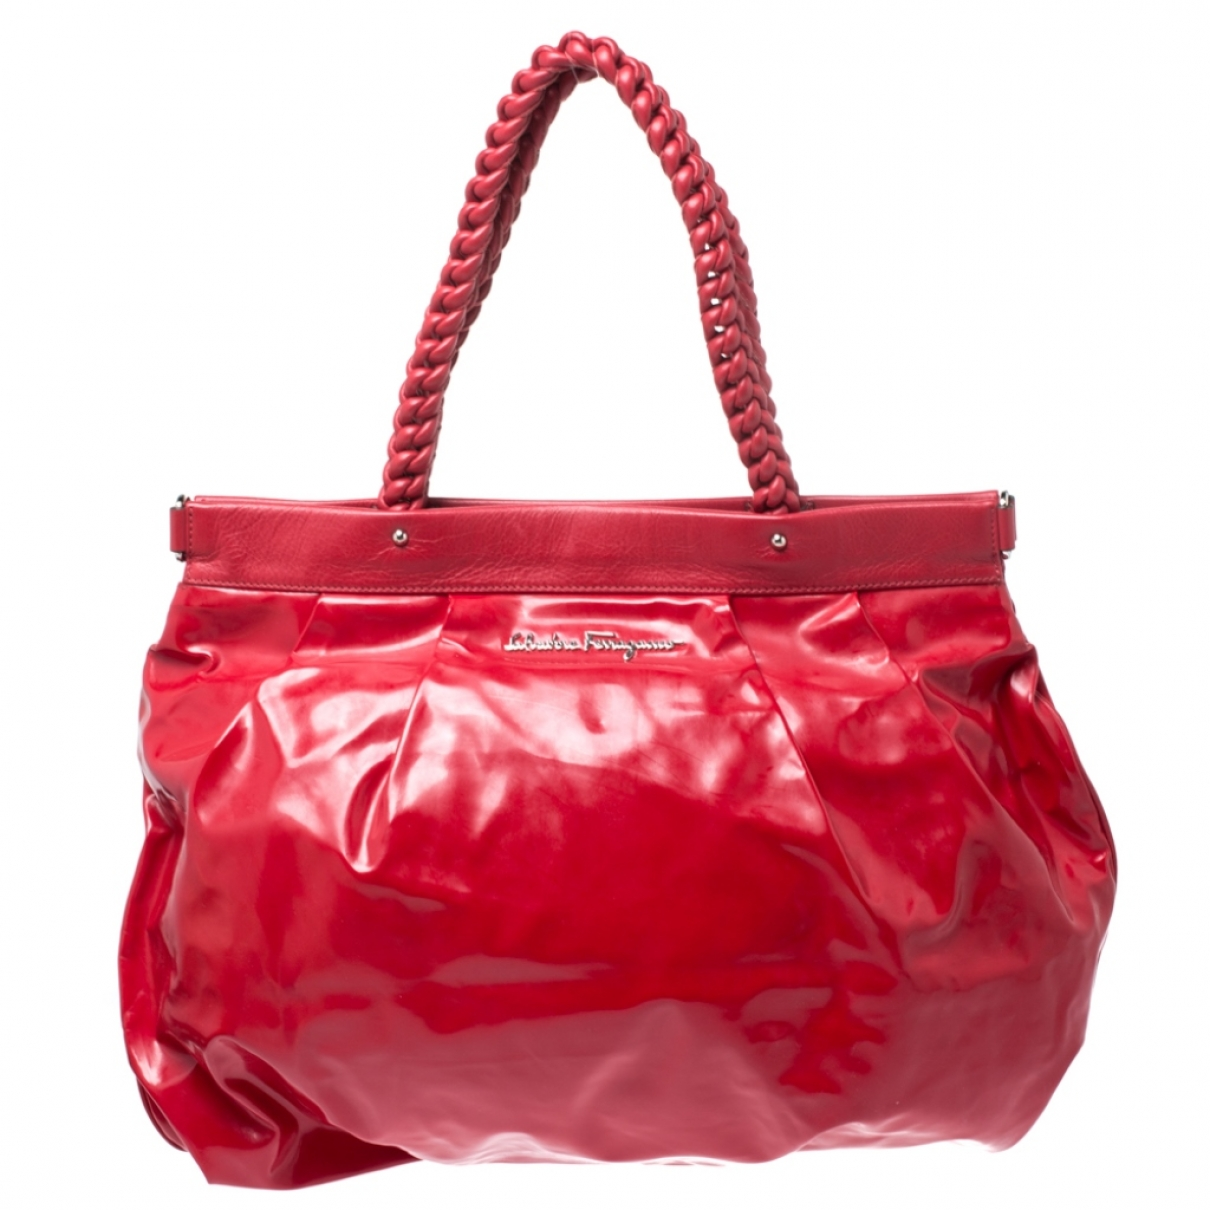 Salvatore Ferragamo \N Red Patent leather handbag for Women \N